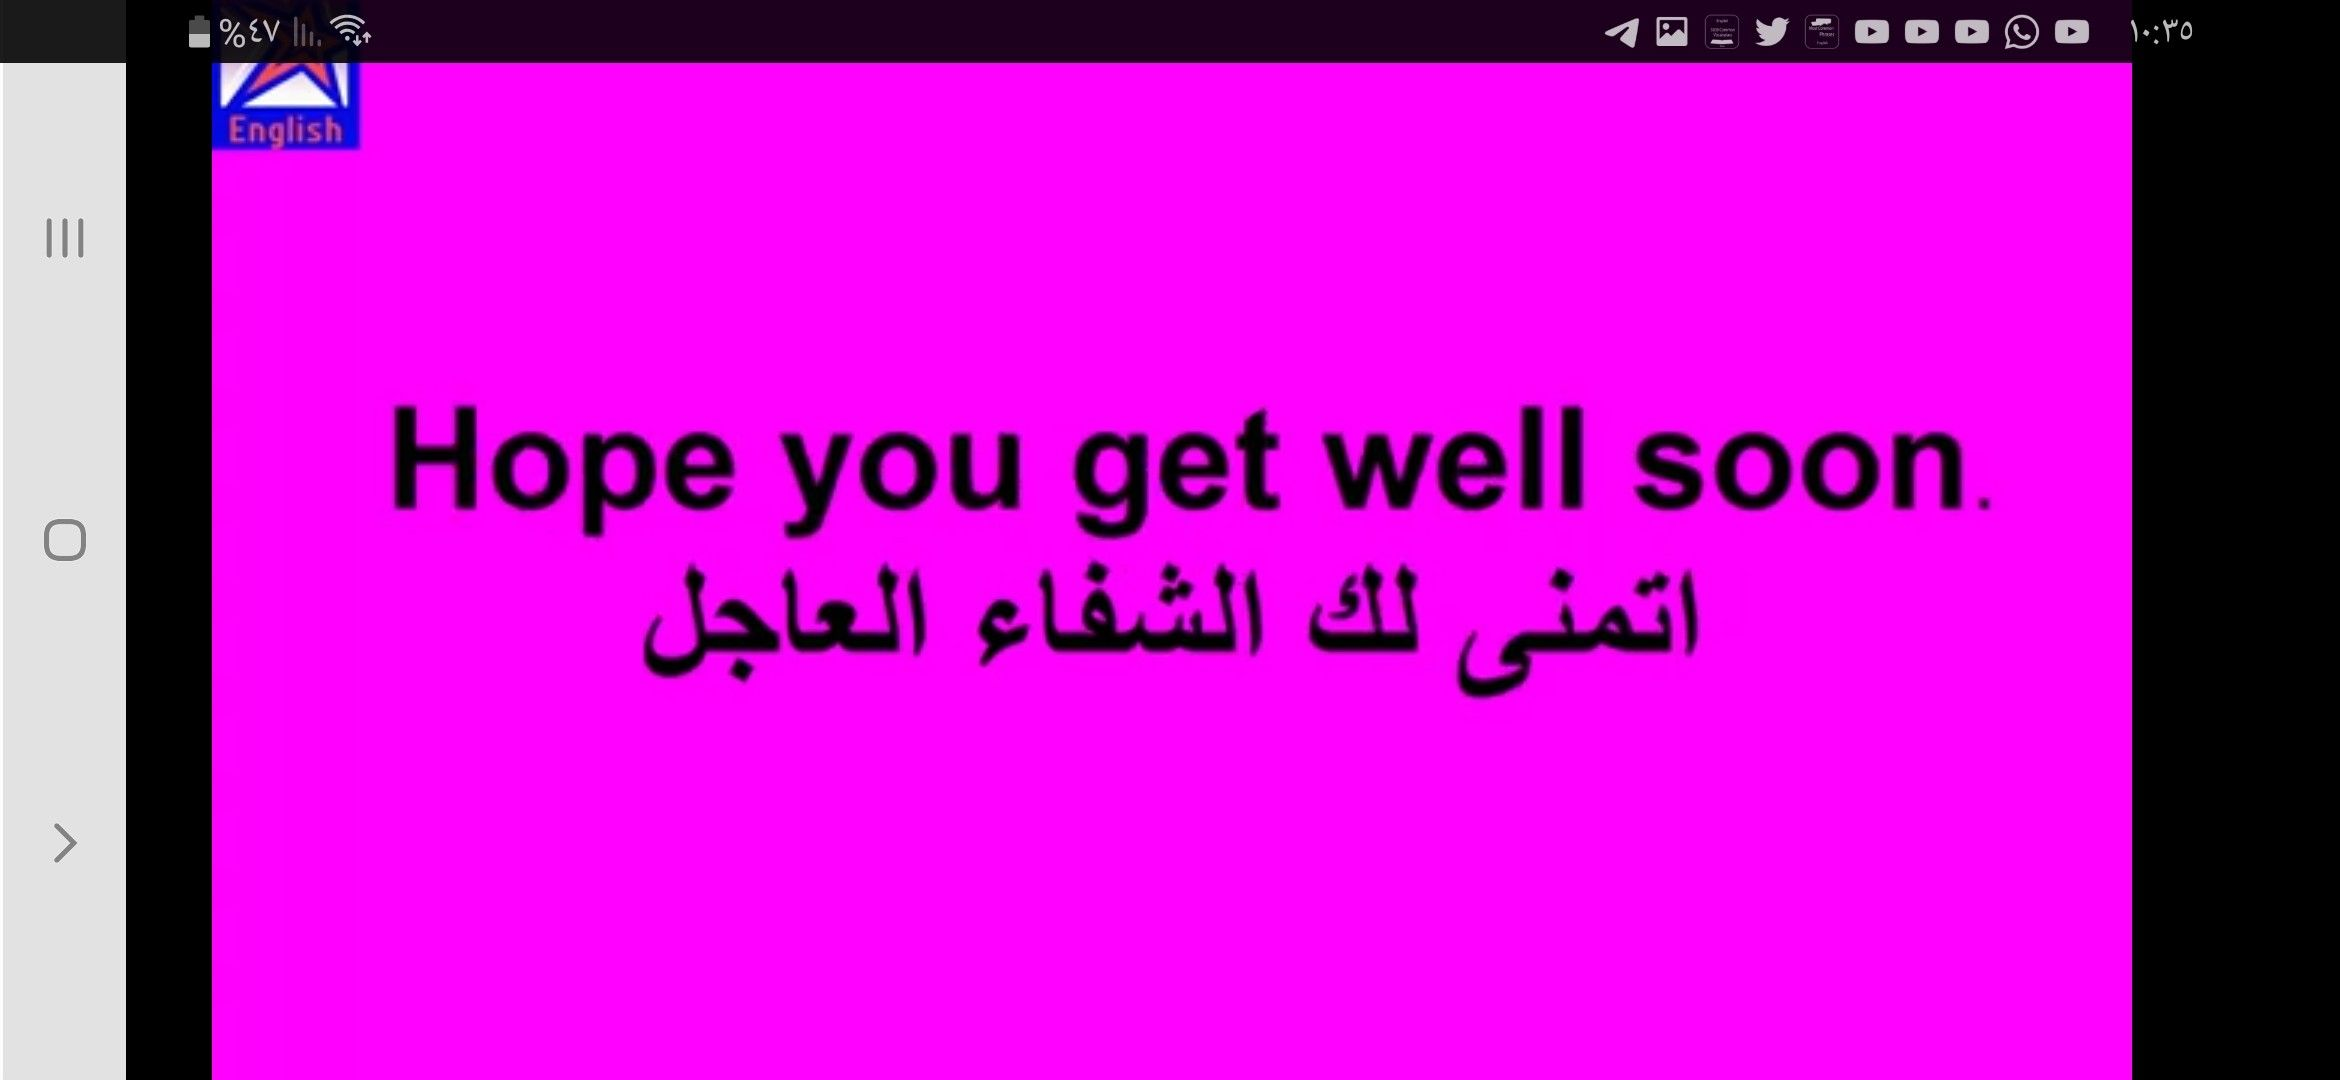 Pin By Haikazmint On Arabic Quotes Learning Arabic English Language Teaching Language Teaching